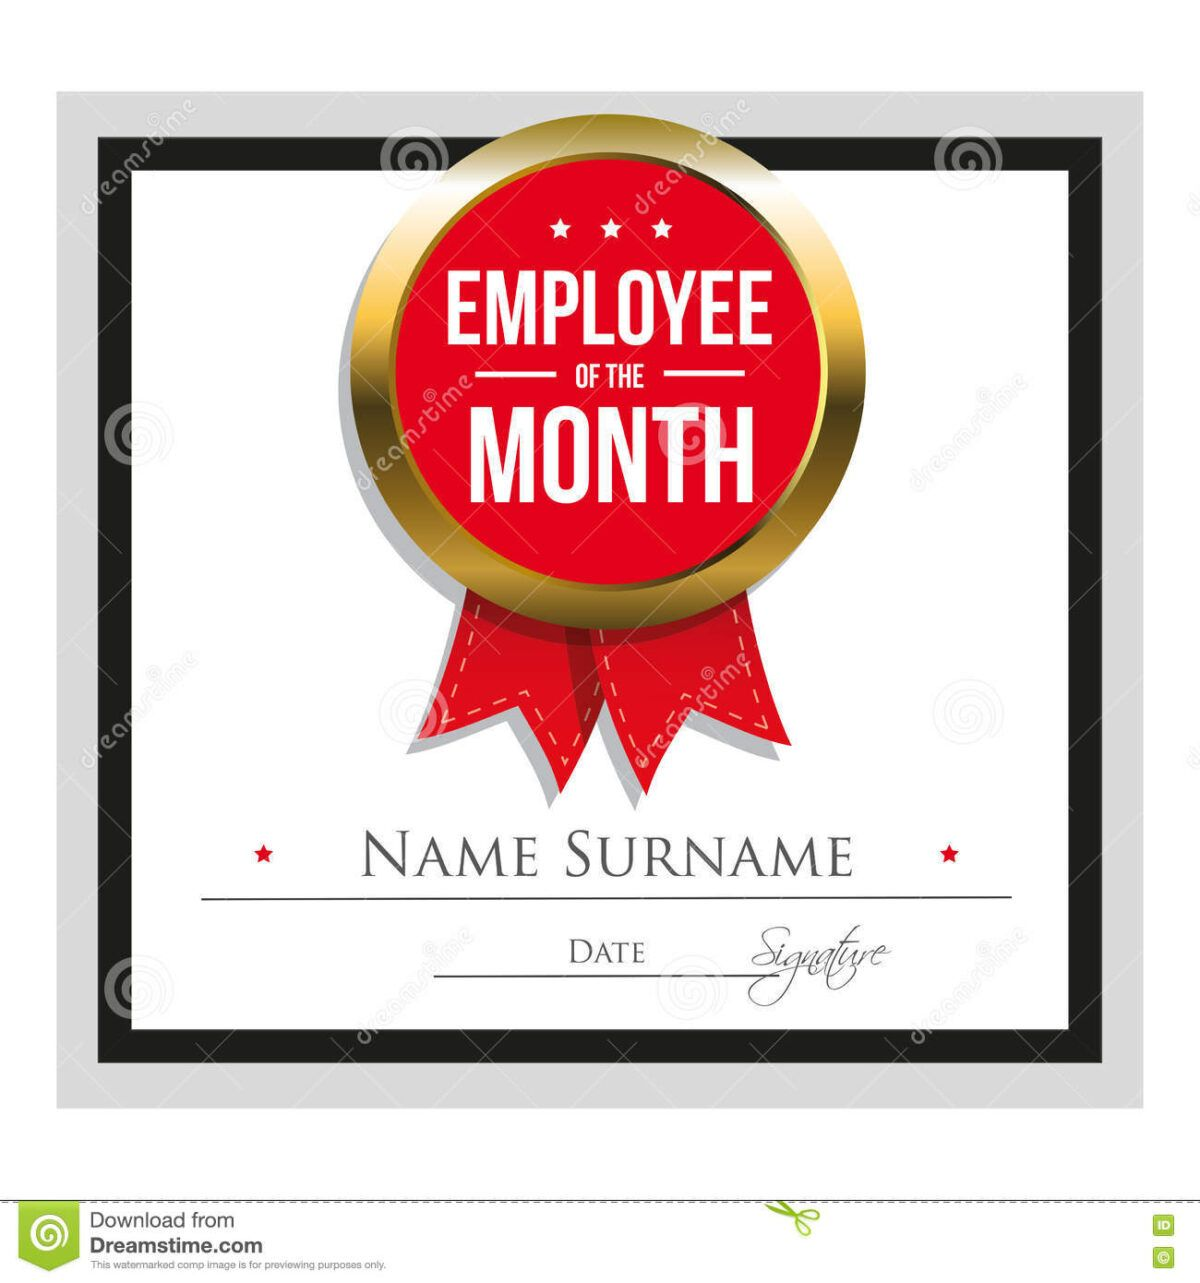 Employee Of The Month Certificate Template Stock Vector In Employee Of The Mont Certificate Templates Employee Awards Certificates Awards Certificates Template Employee of the month plaque template